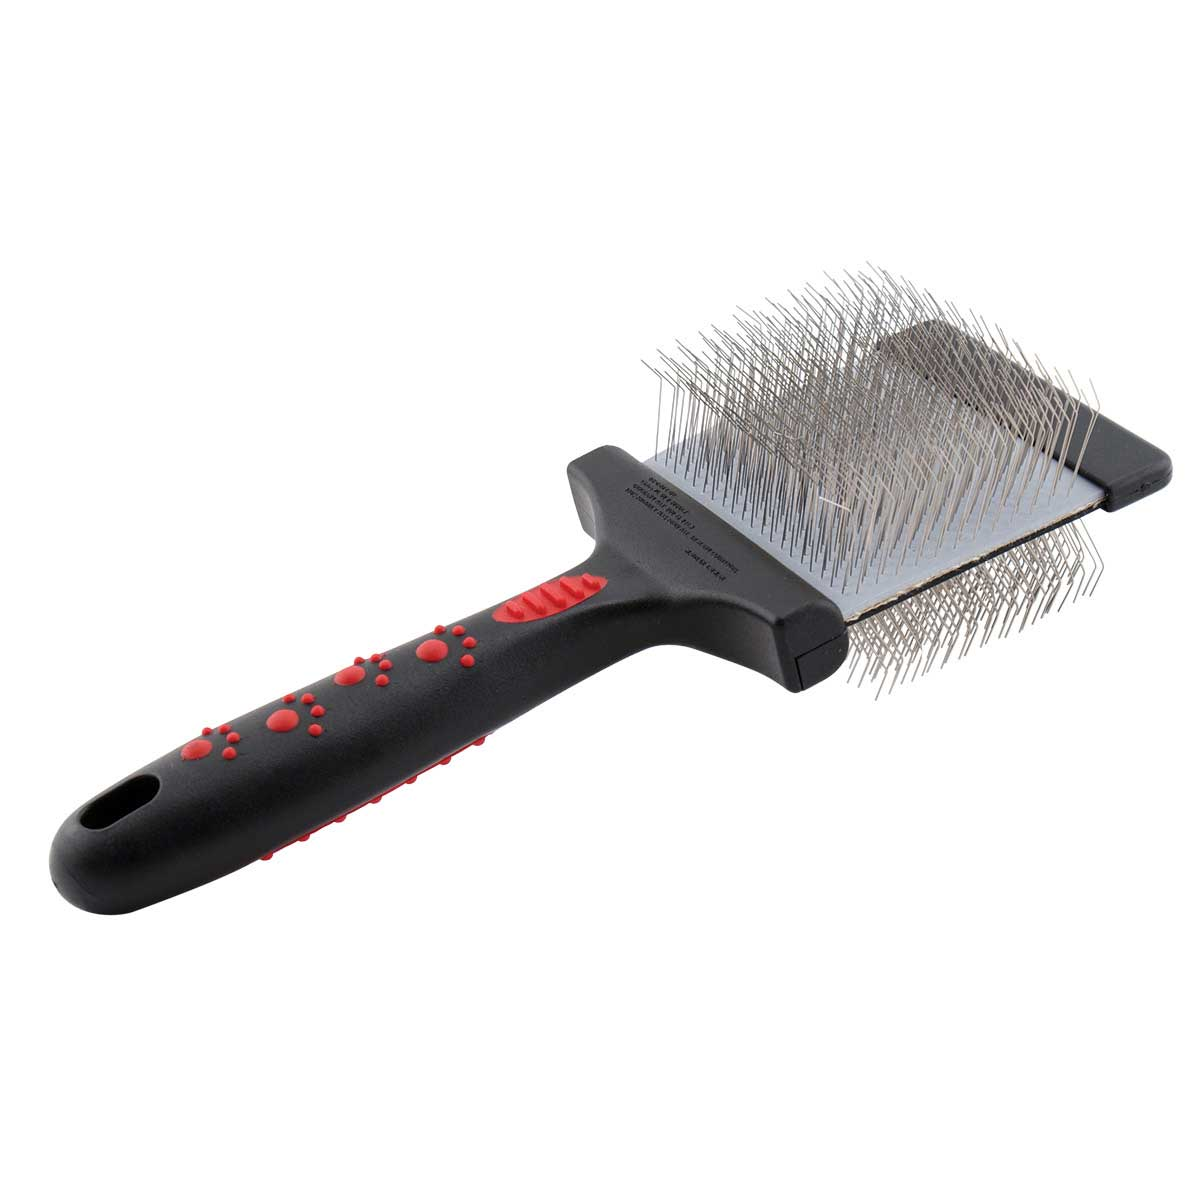 Paw Brothers Soft/Large Double Sided Flex Slicker Grooming Brush